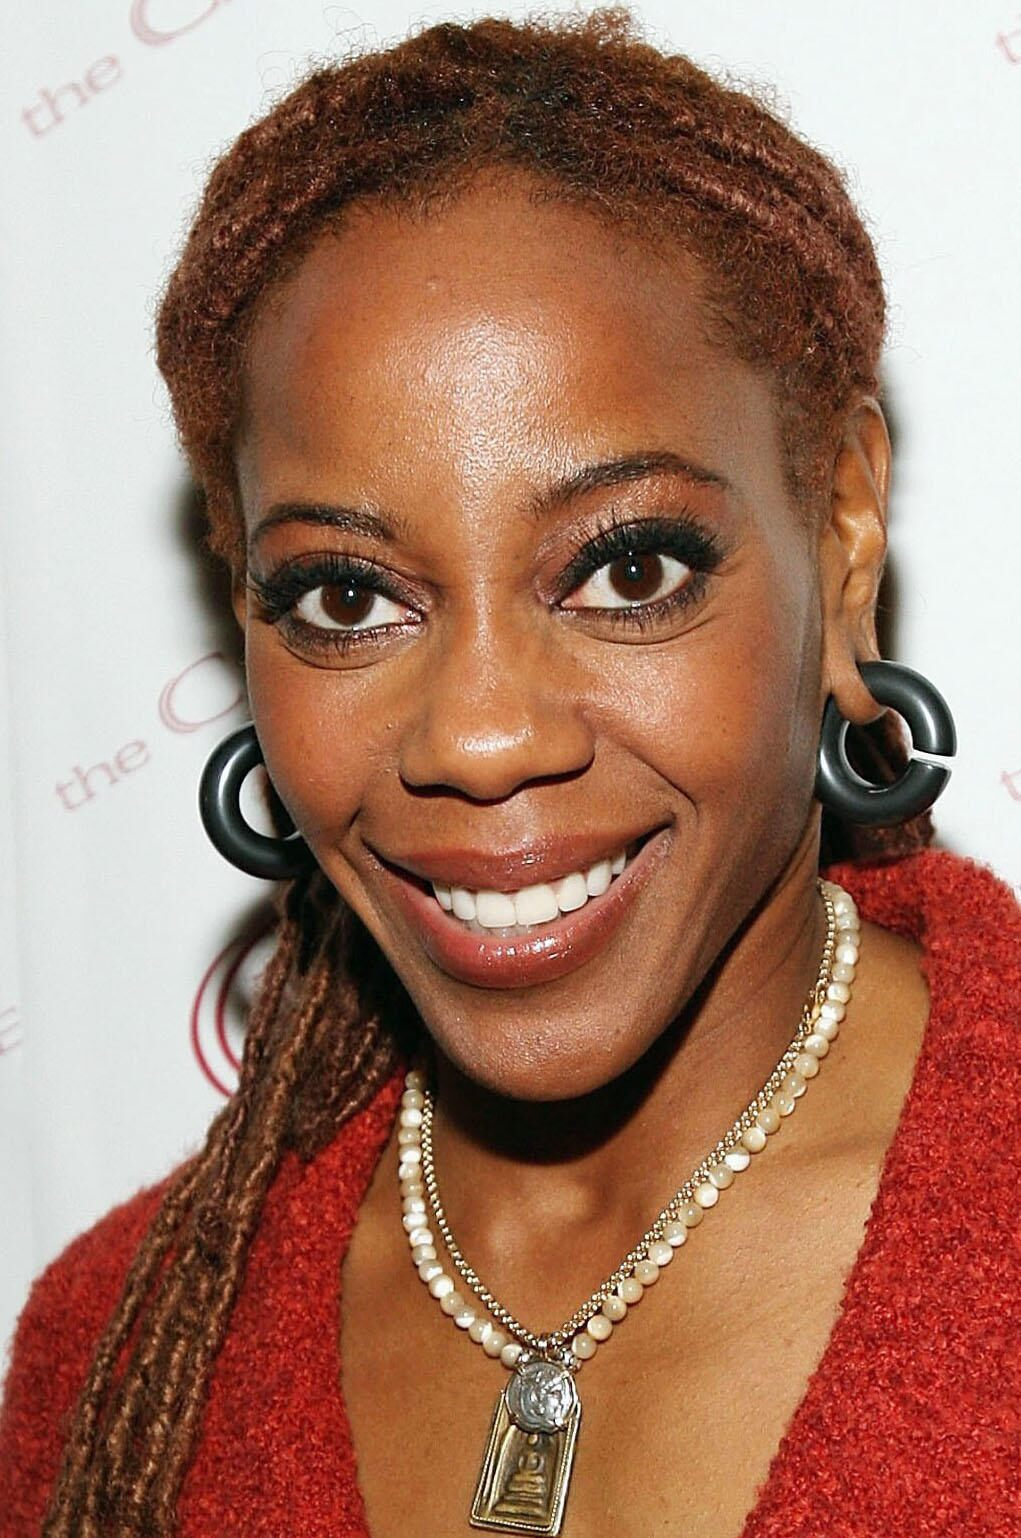 How tall is Debra Wilson?